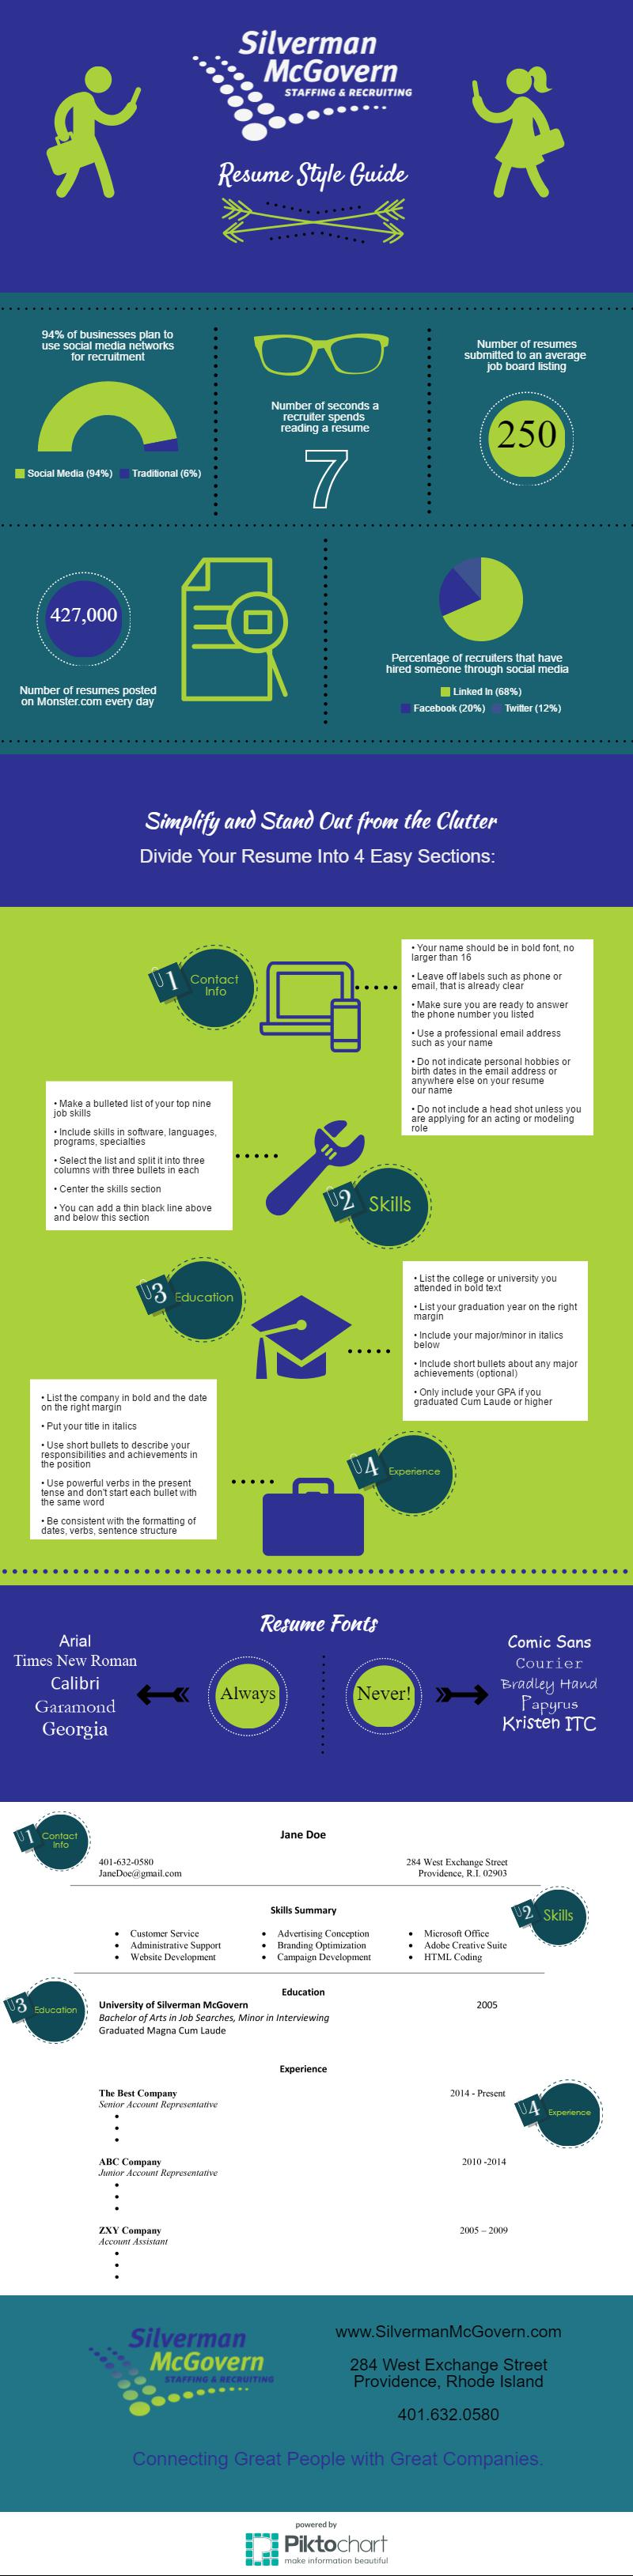 resume style guide infographic silverman mcgovern resume style guide